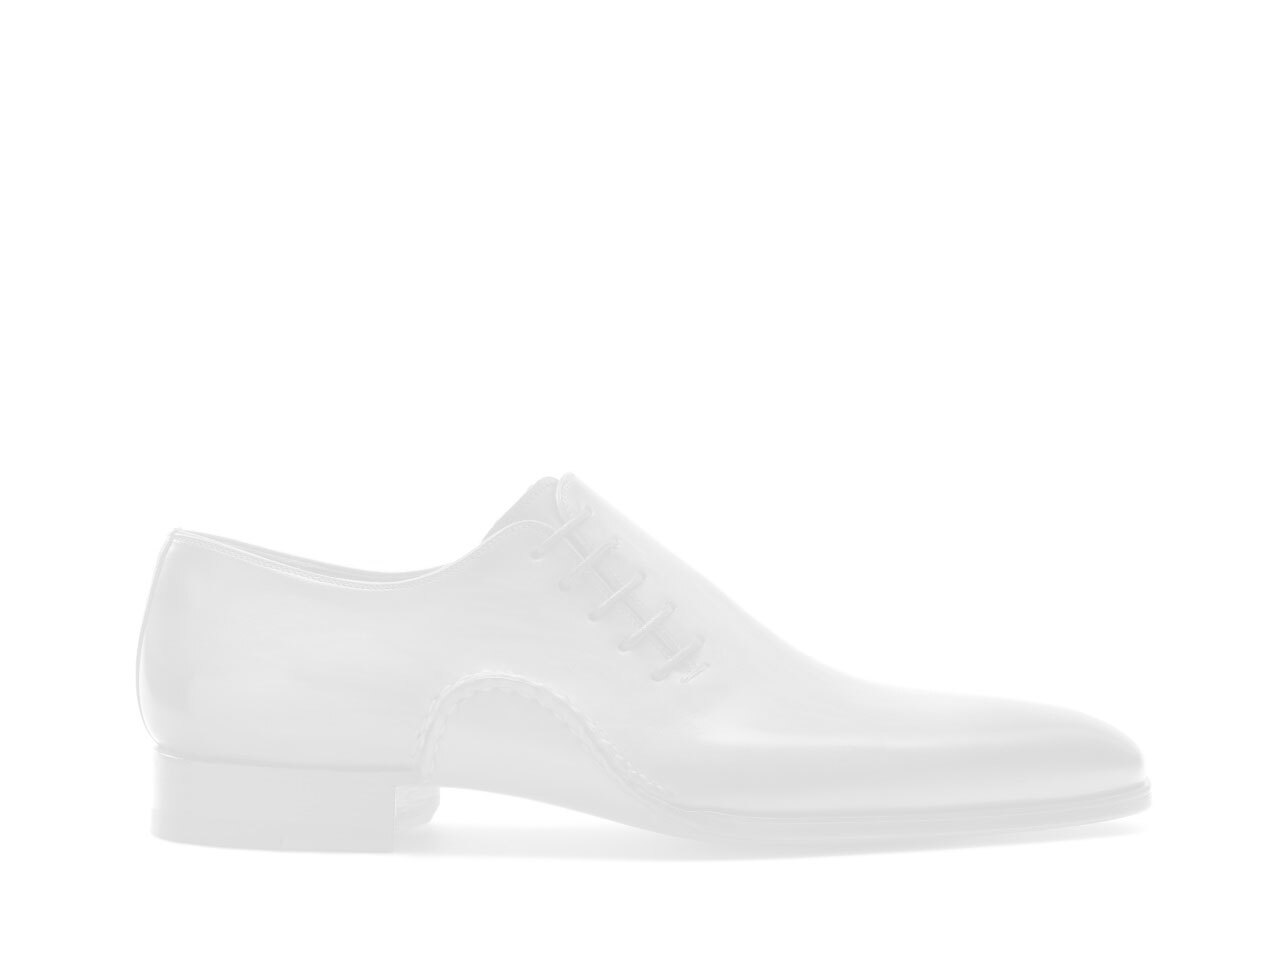 Side view of the Magnanni Allariz White Men's Sneakers